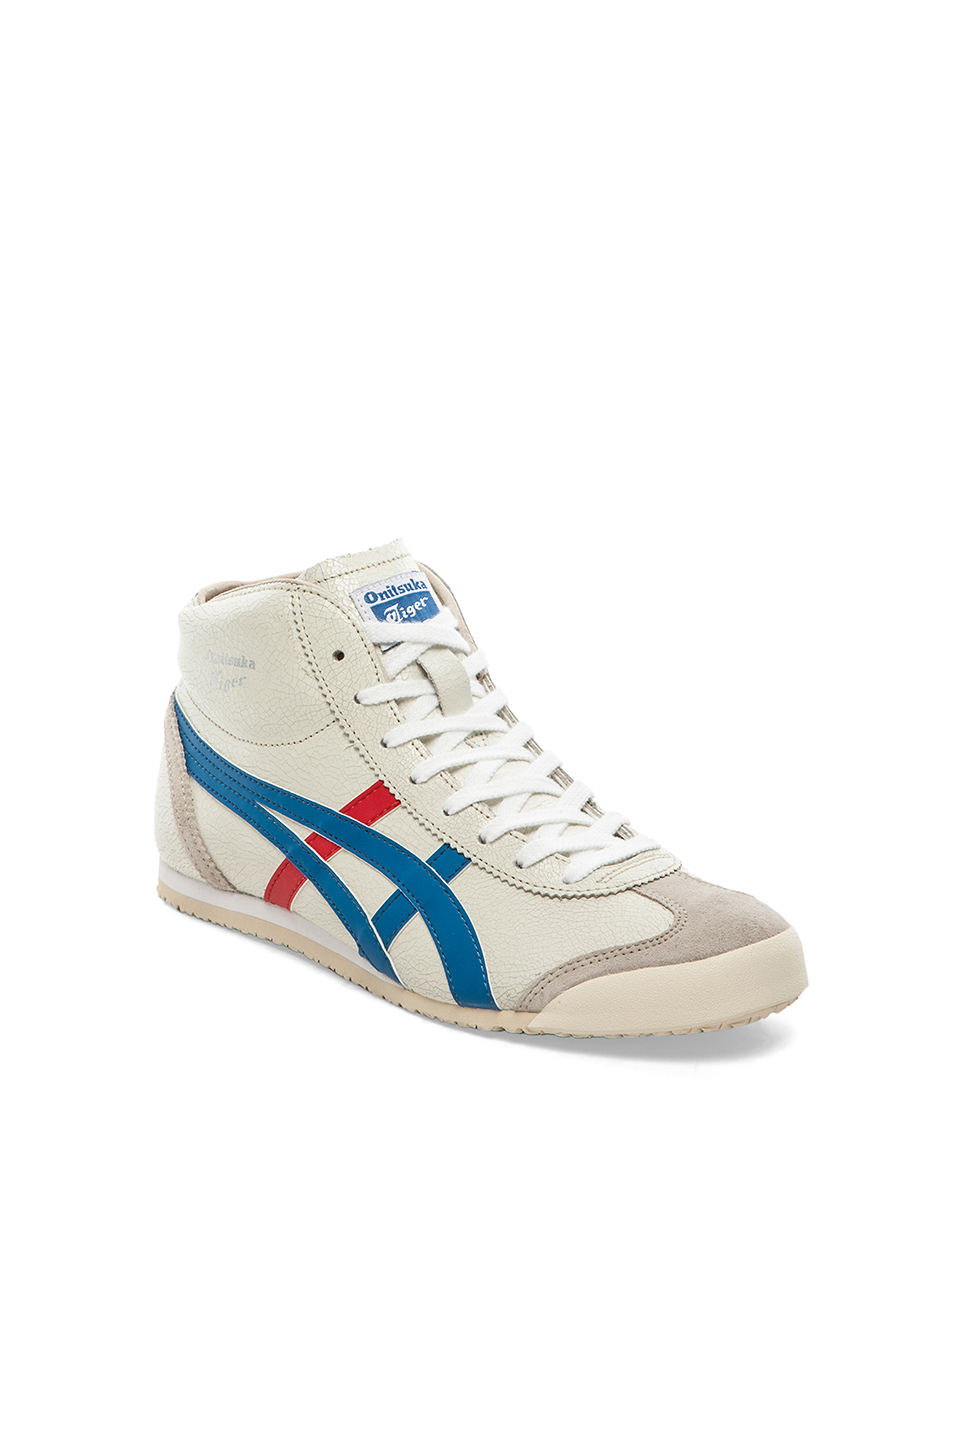 watch 6e175 12199 Mexico Mid Runner, Onitsuka Tiger